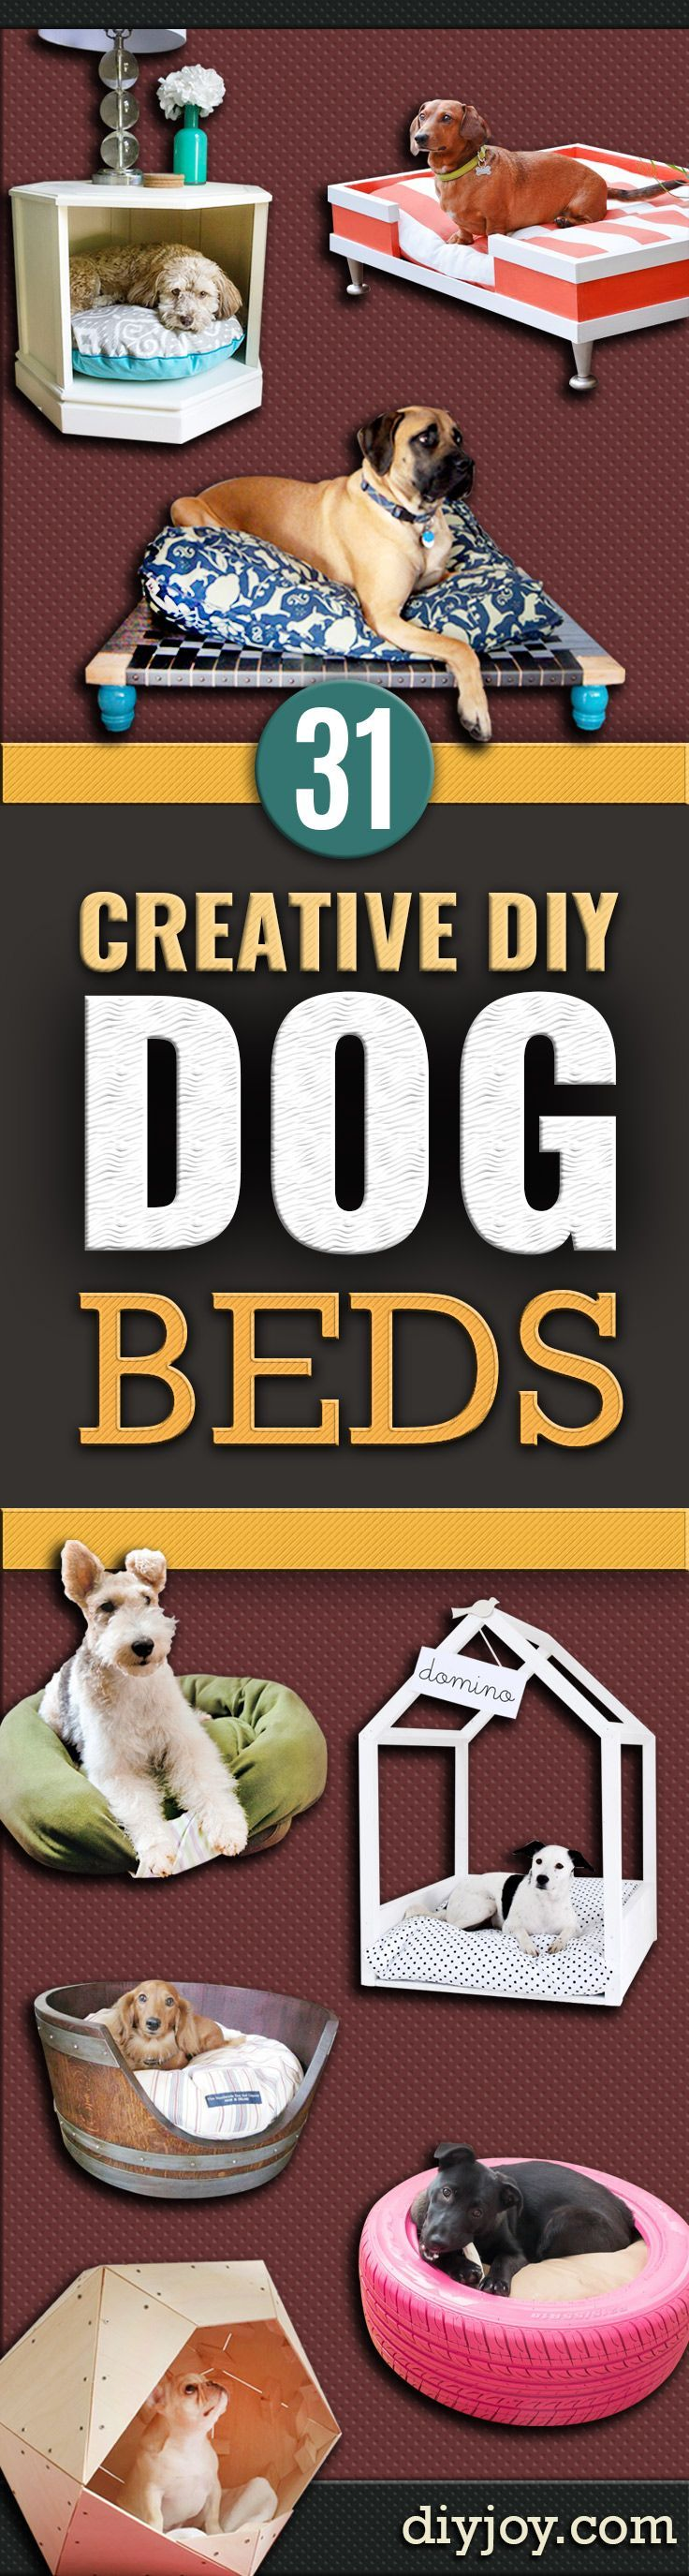 Best 25+ Small Dog Beds Ideas Only On Pinterest  Cute Dog Beds, Dog Beds  For Small Dogs And Pet Beds For Dogs